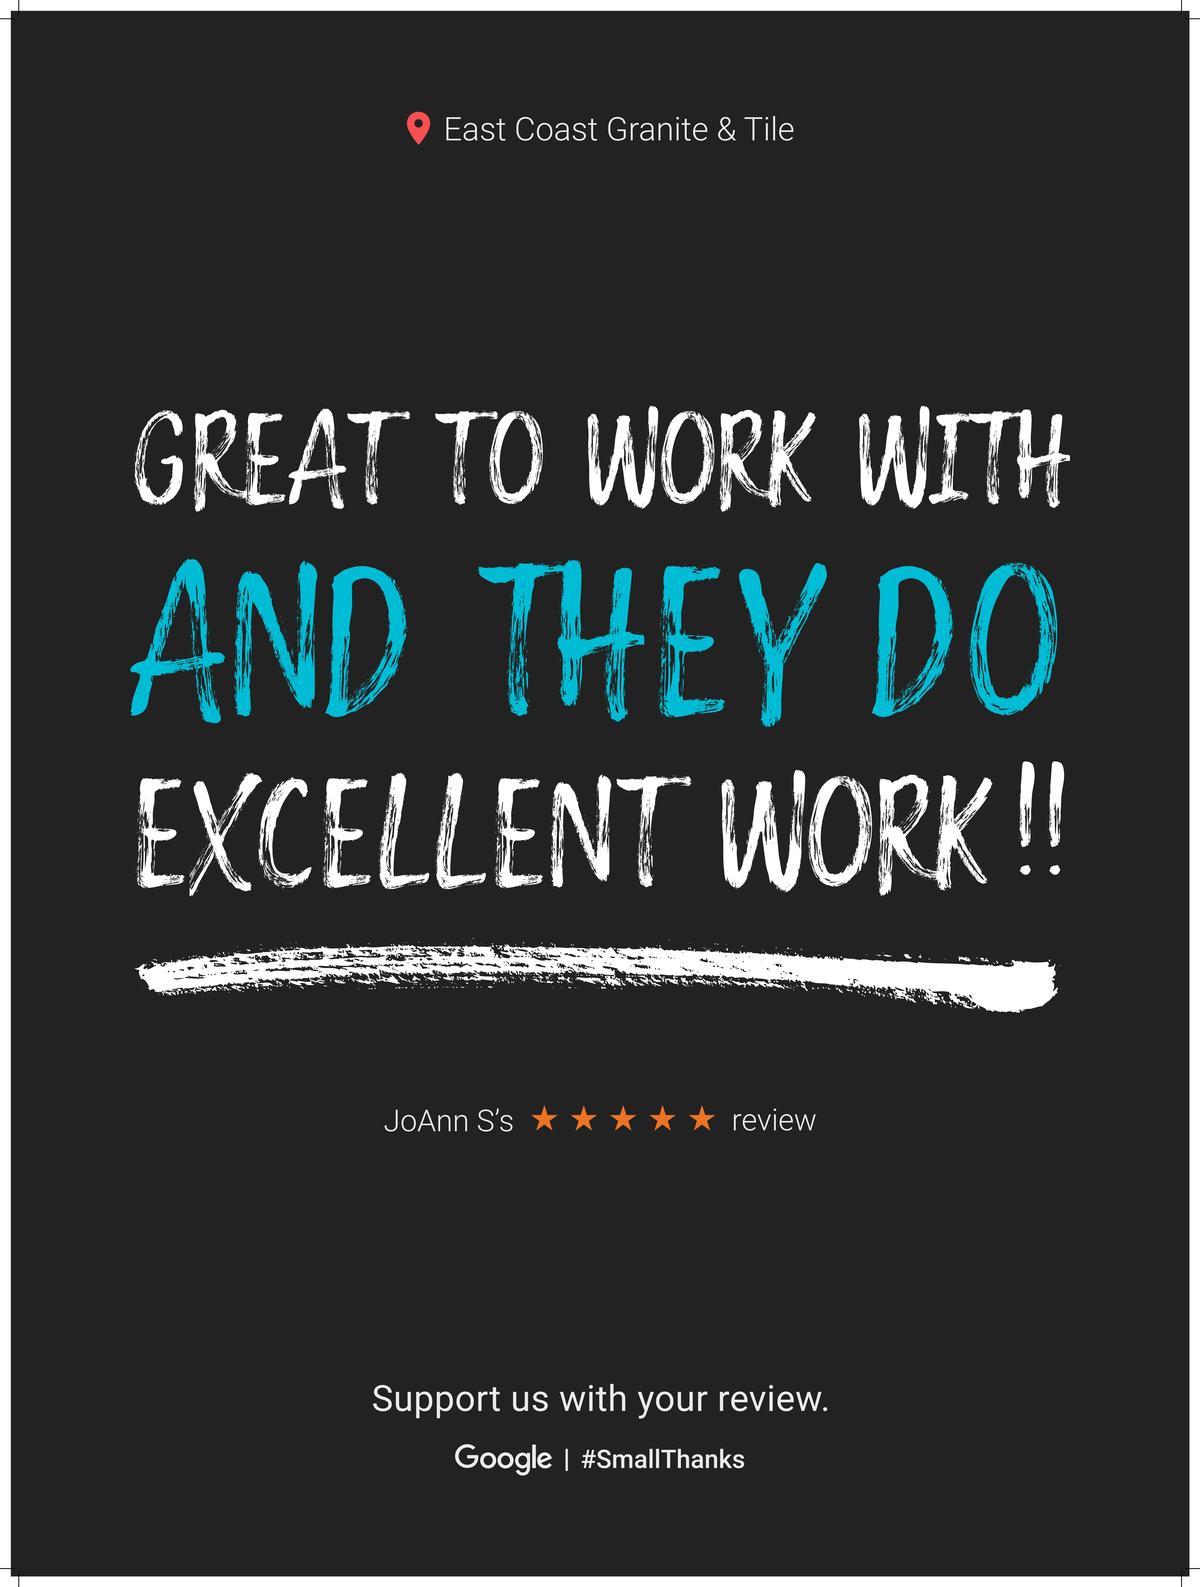 Google Review Greenville from Joann S. - Great to work with and they do Excellent Work!